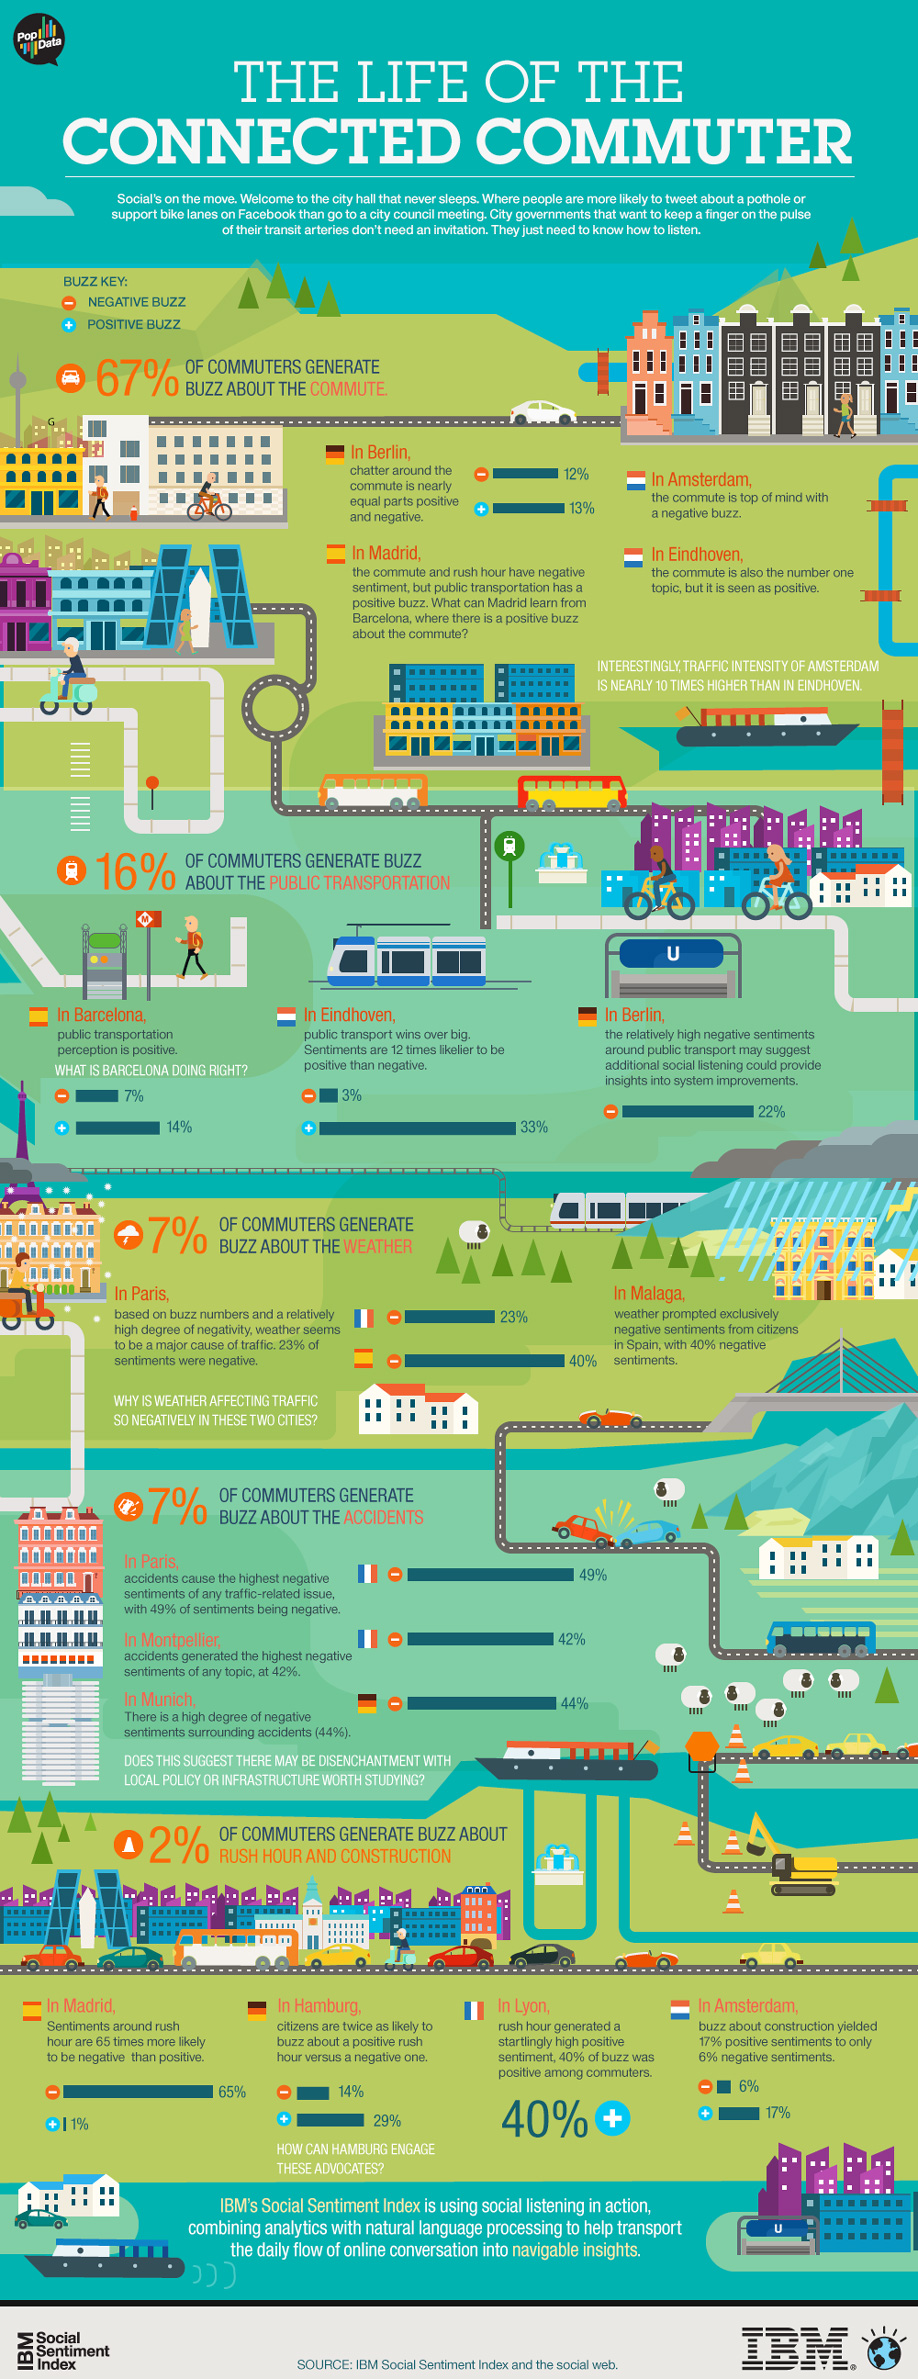 Infographic: The Life of the Connected Commuter